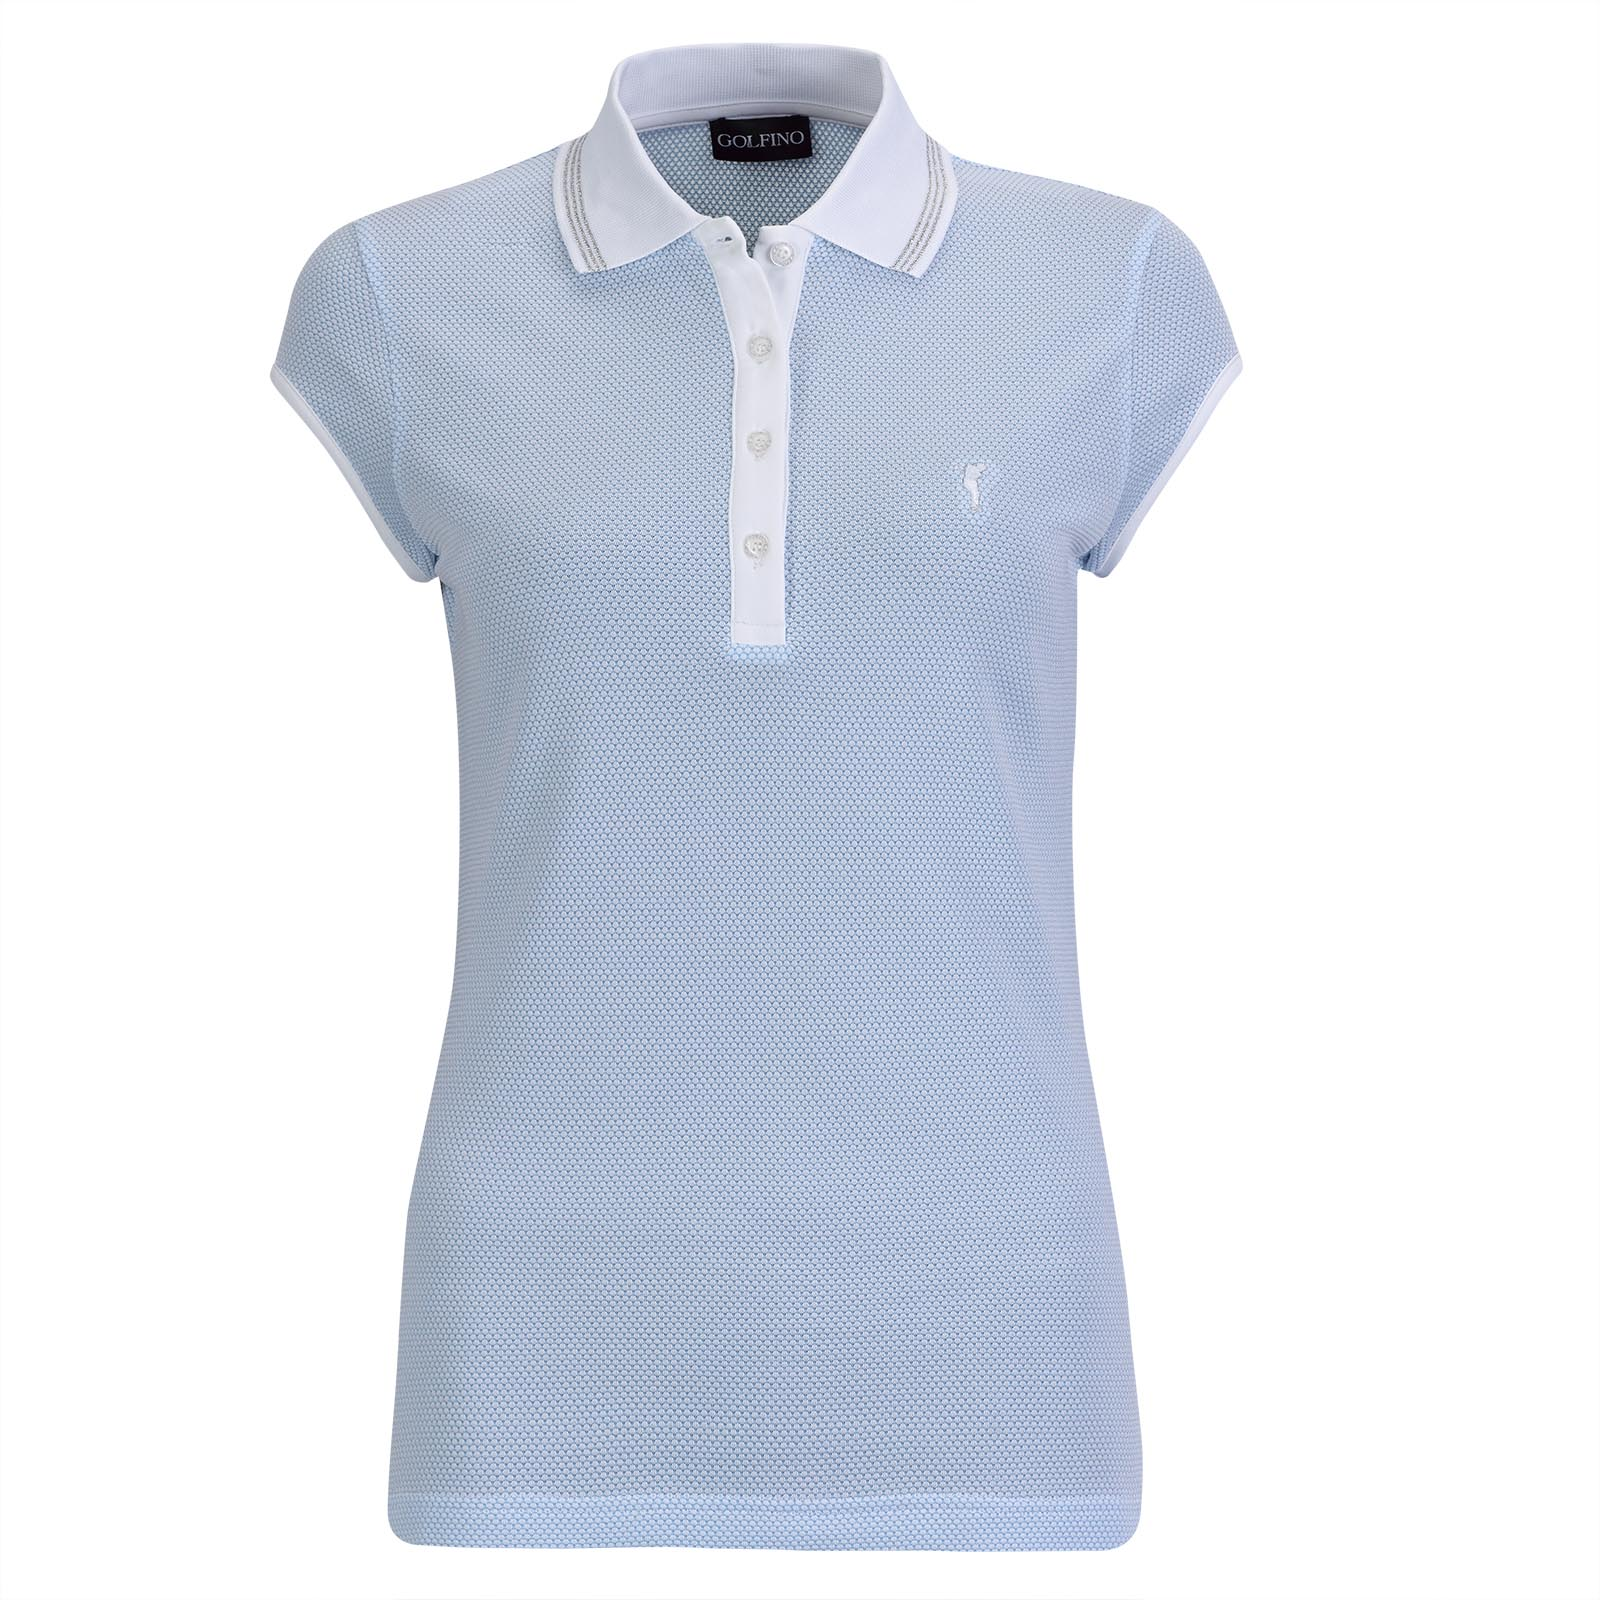 Ladies' bubble jacquard golf polo with capped sleeves